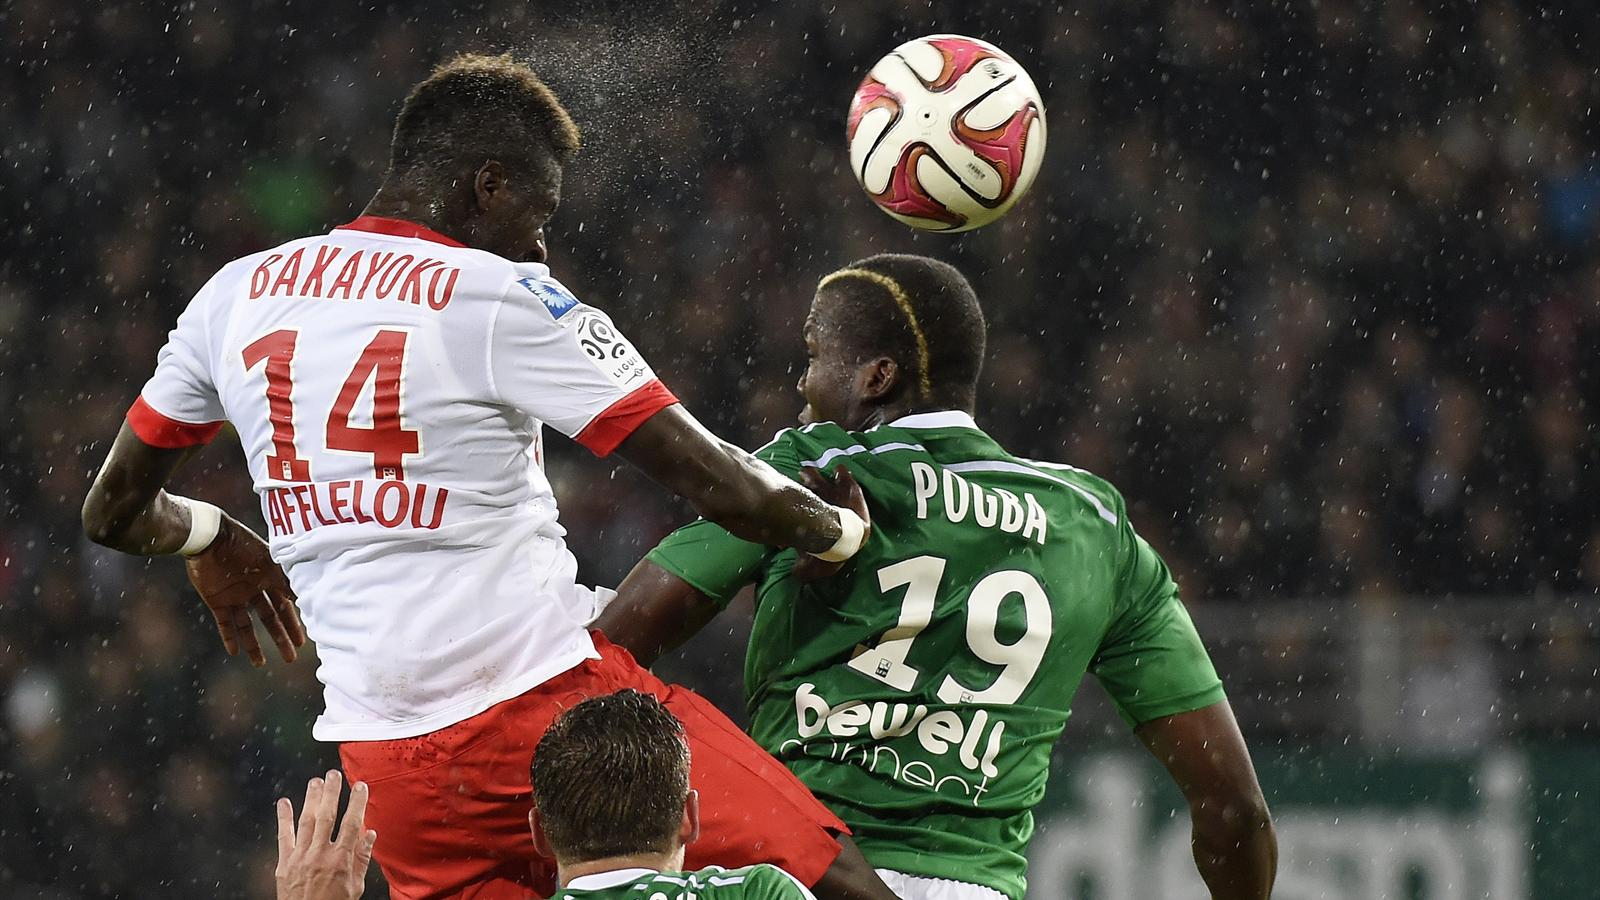 Video: Saint-Étienne vs Monaco